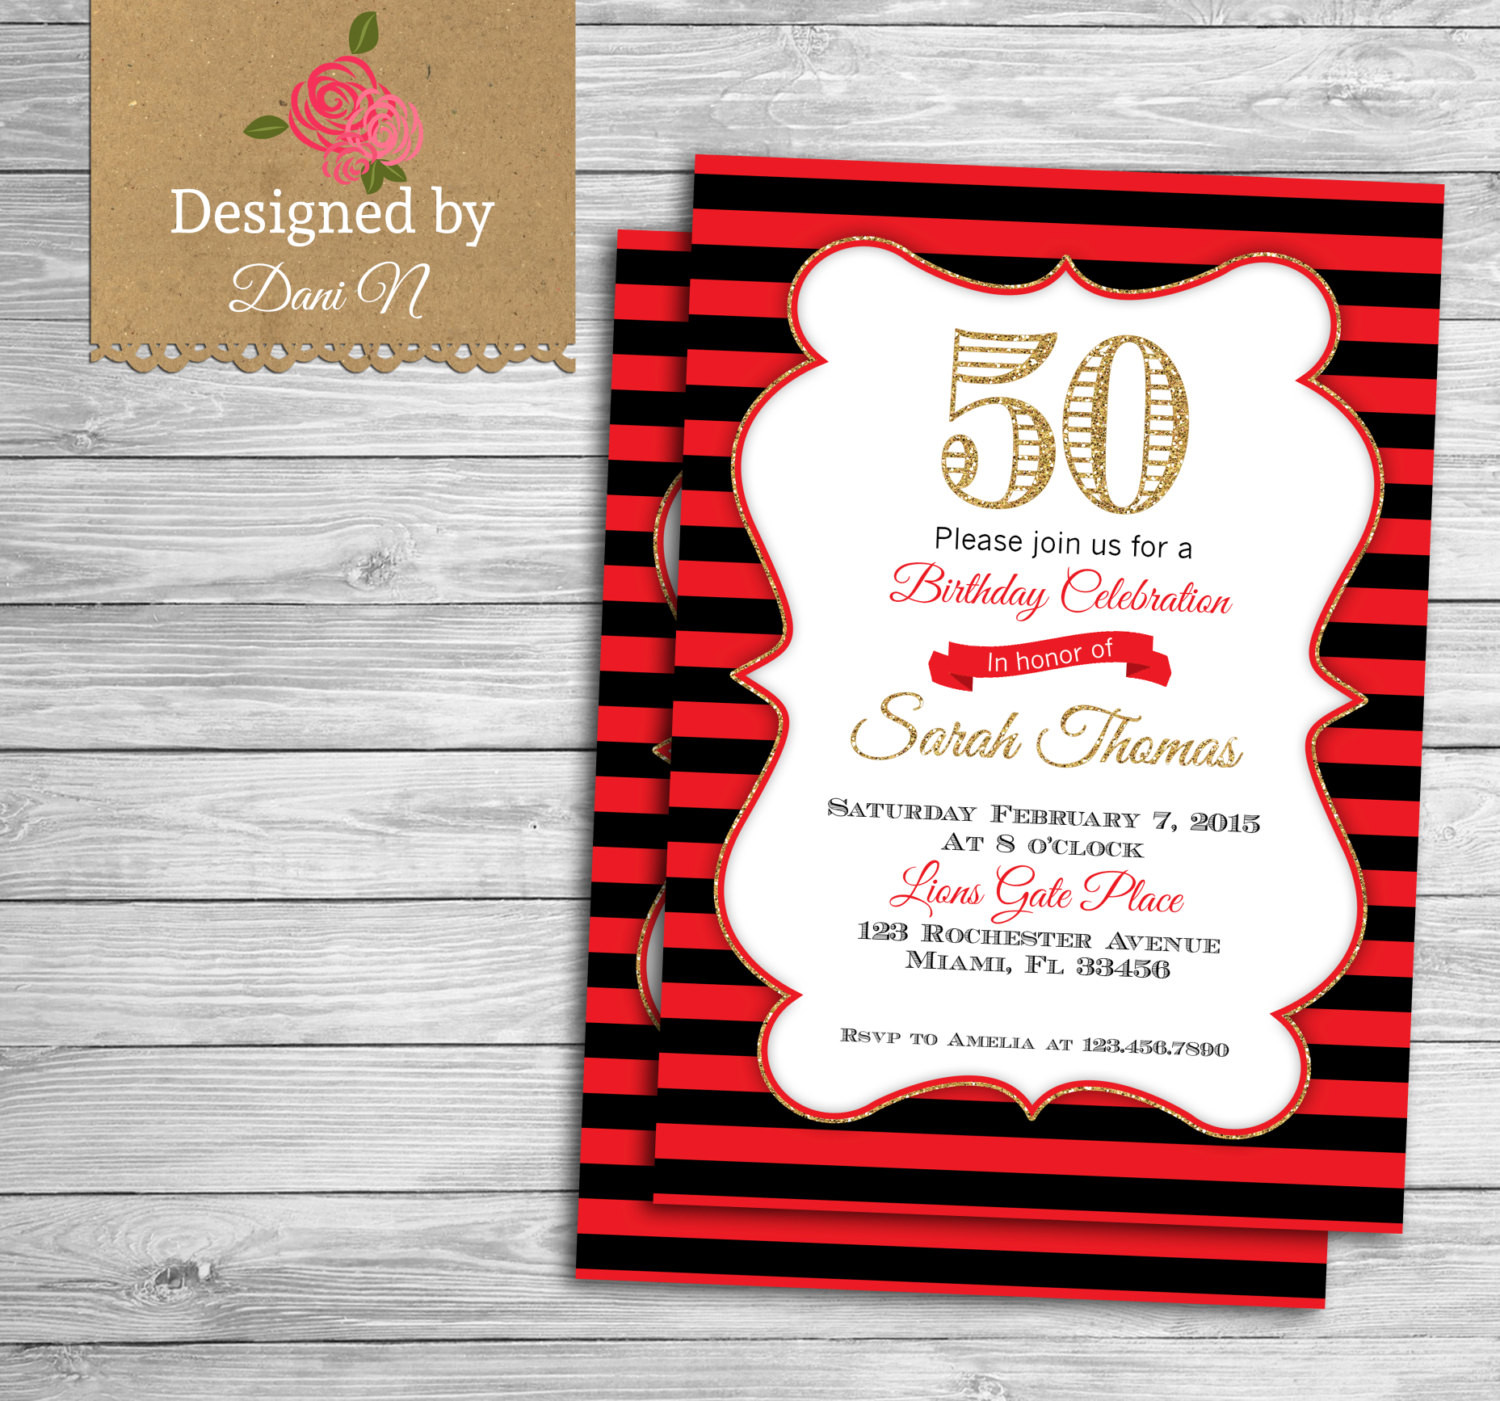 Best ideas about Birthday Invitations For Adults . Save or Pin Adult Birthday INVITATION 50th birthday invite adult party Now.